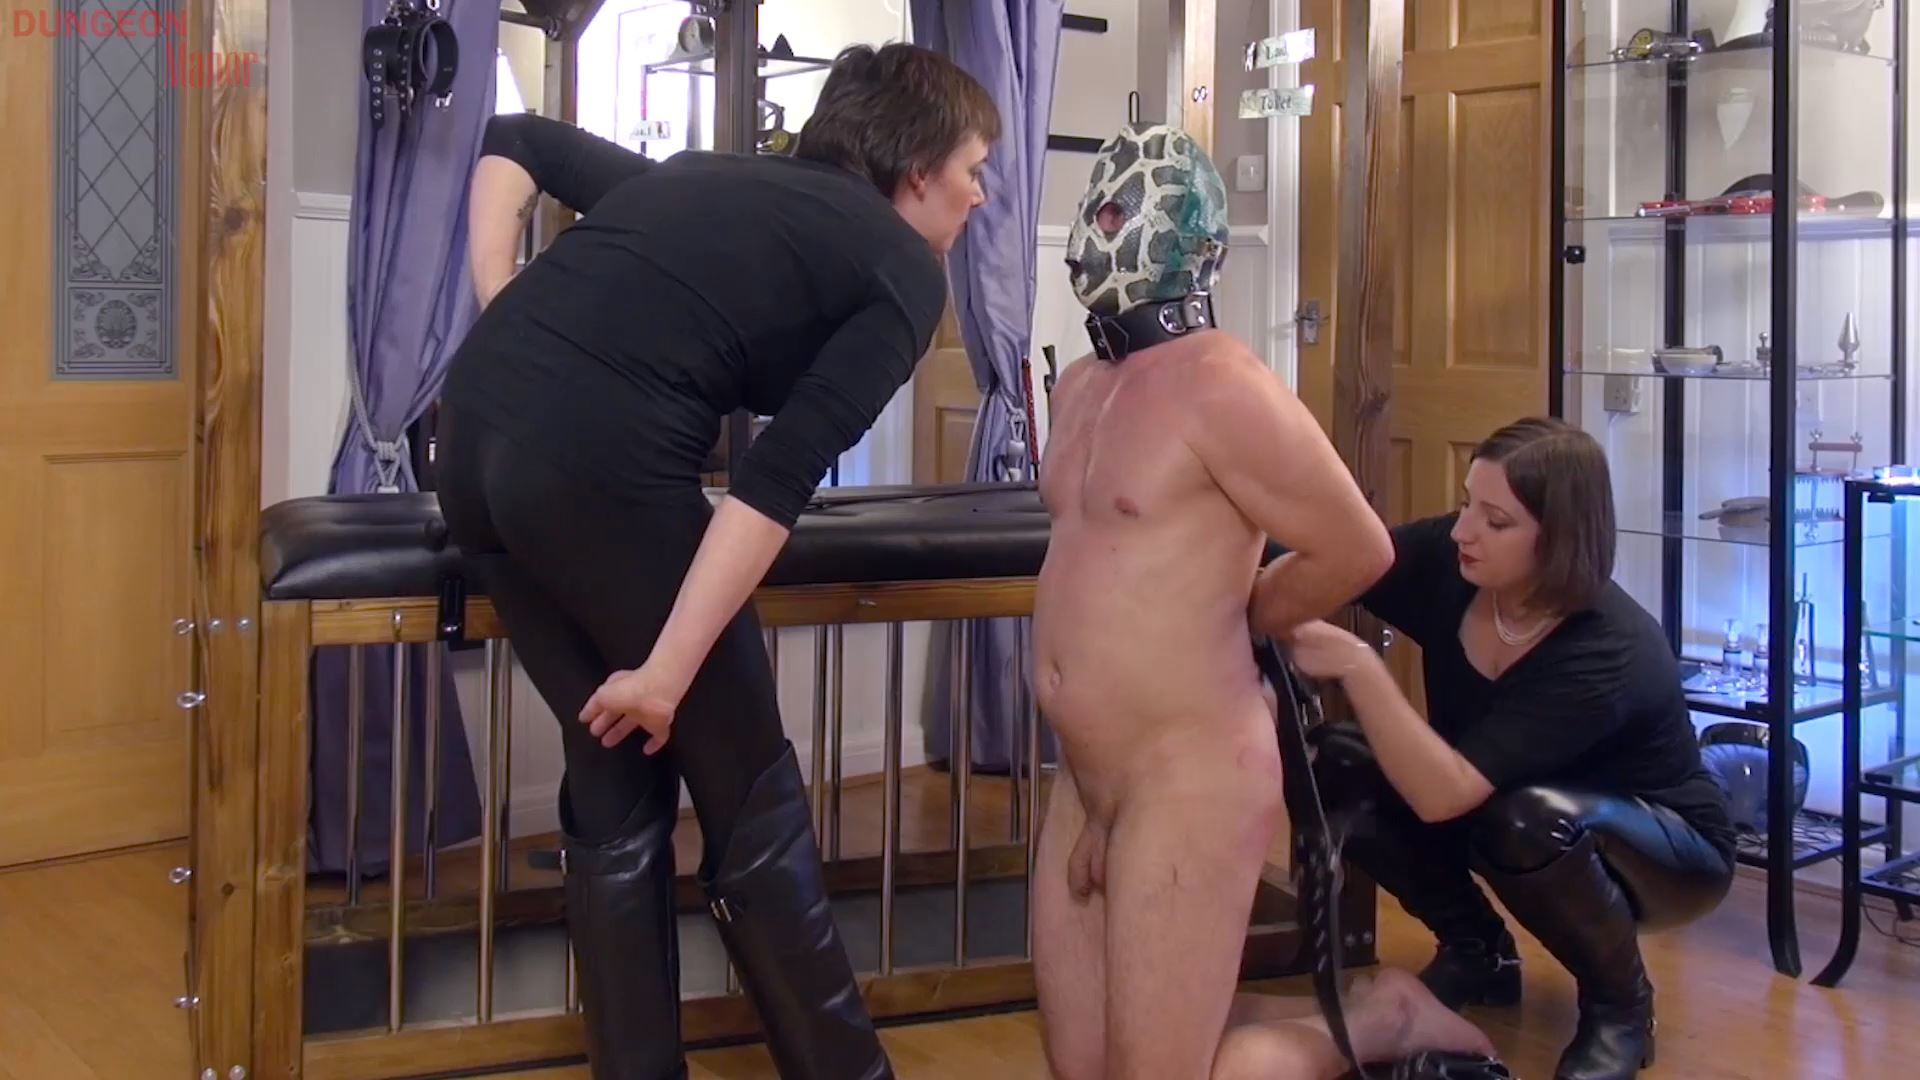 A dungeon Manor Production 434 - MISTRESS EVILYNE - FULL HD/1080p/MP4